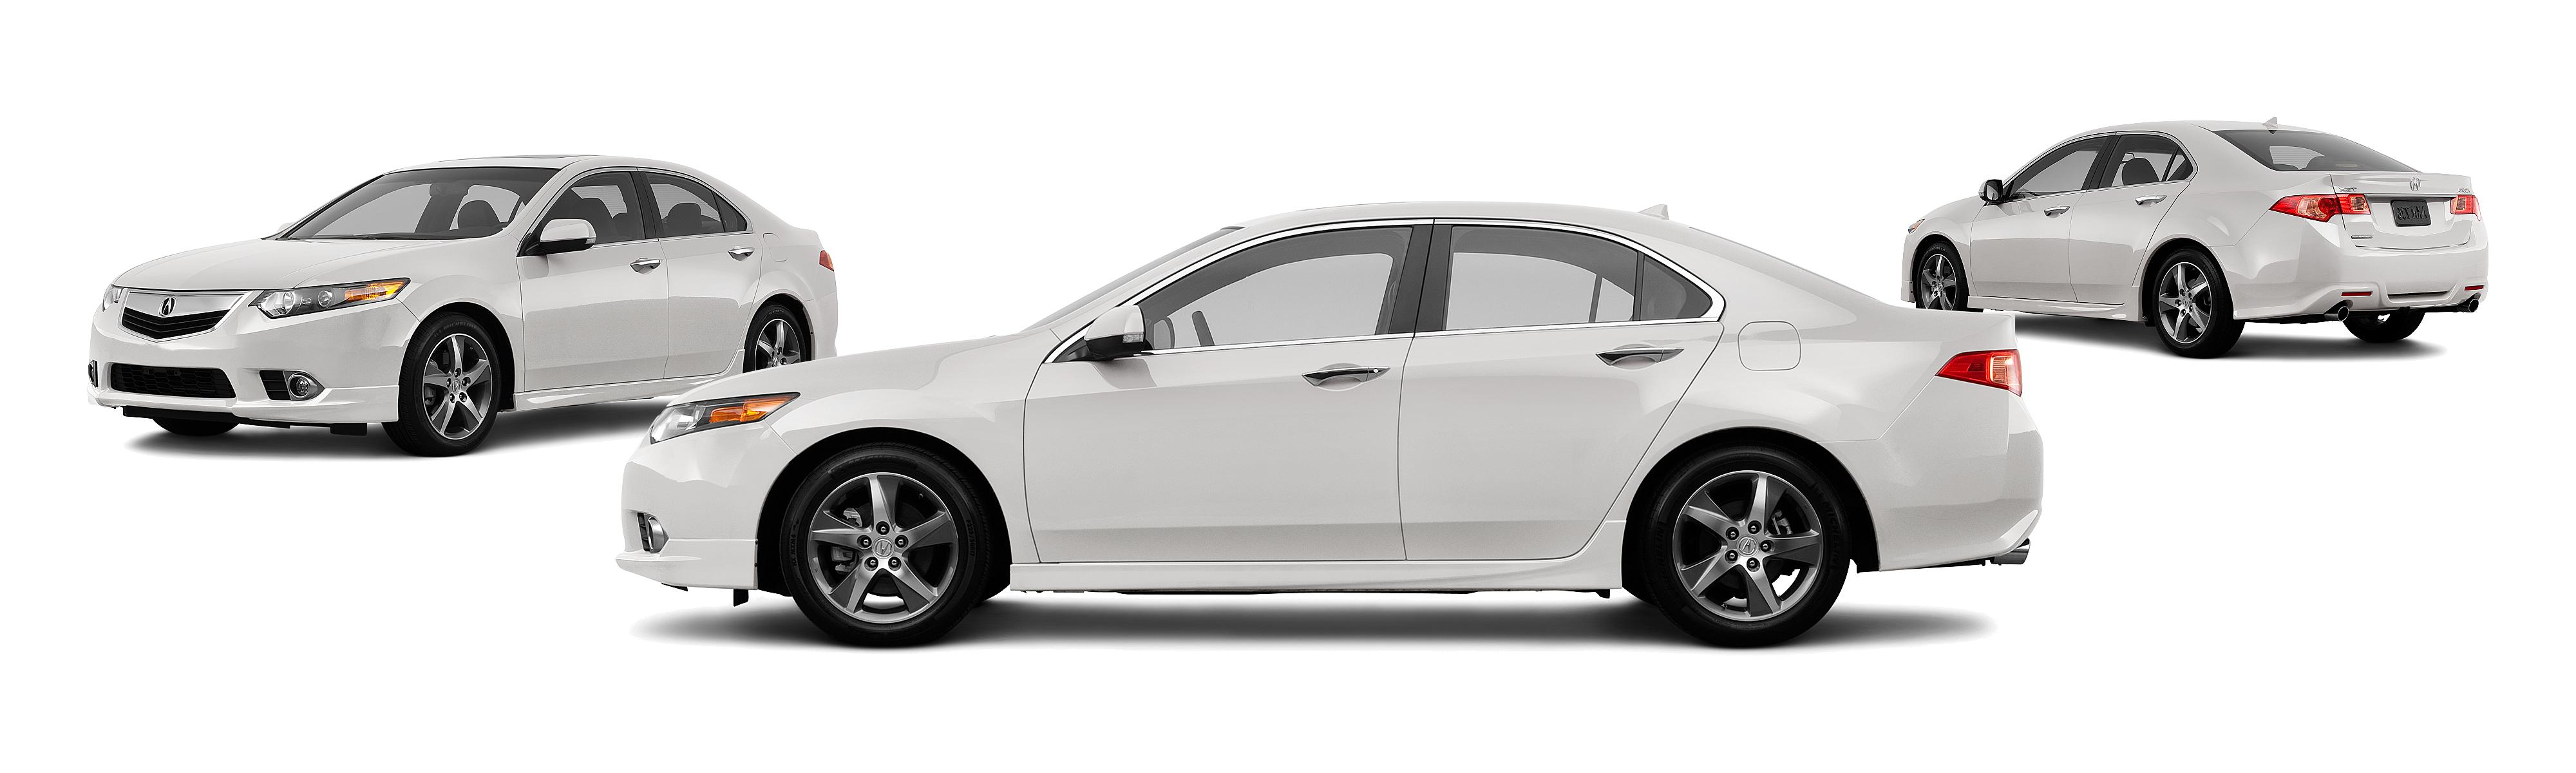 special damping your most the acura reviews of tsx suspension review and search ride edition article bumps photo for offers notes by transmission is to absorb smooth best car good manual